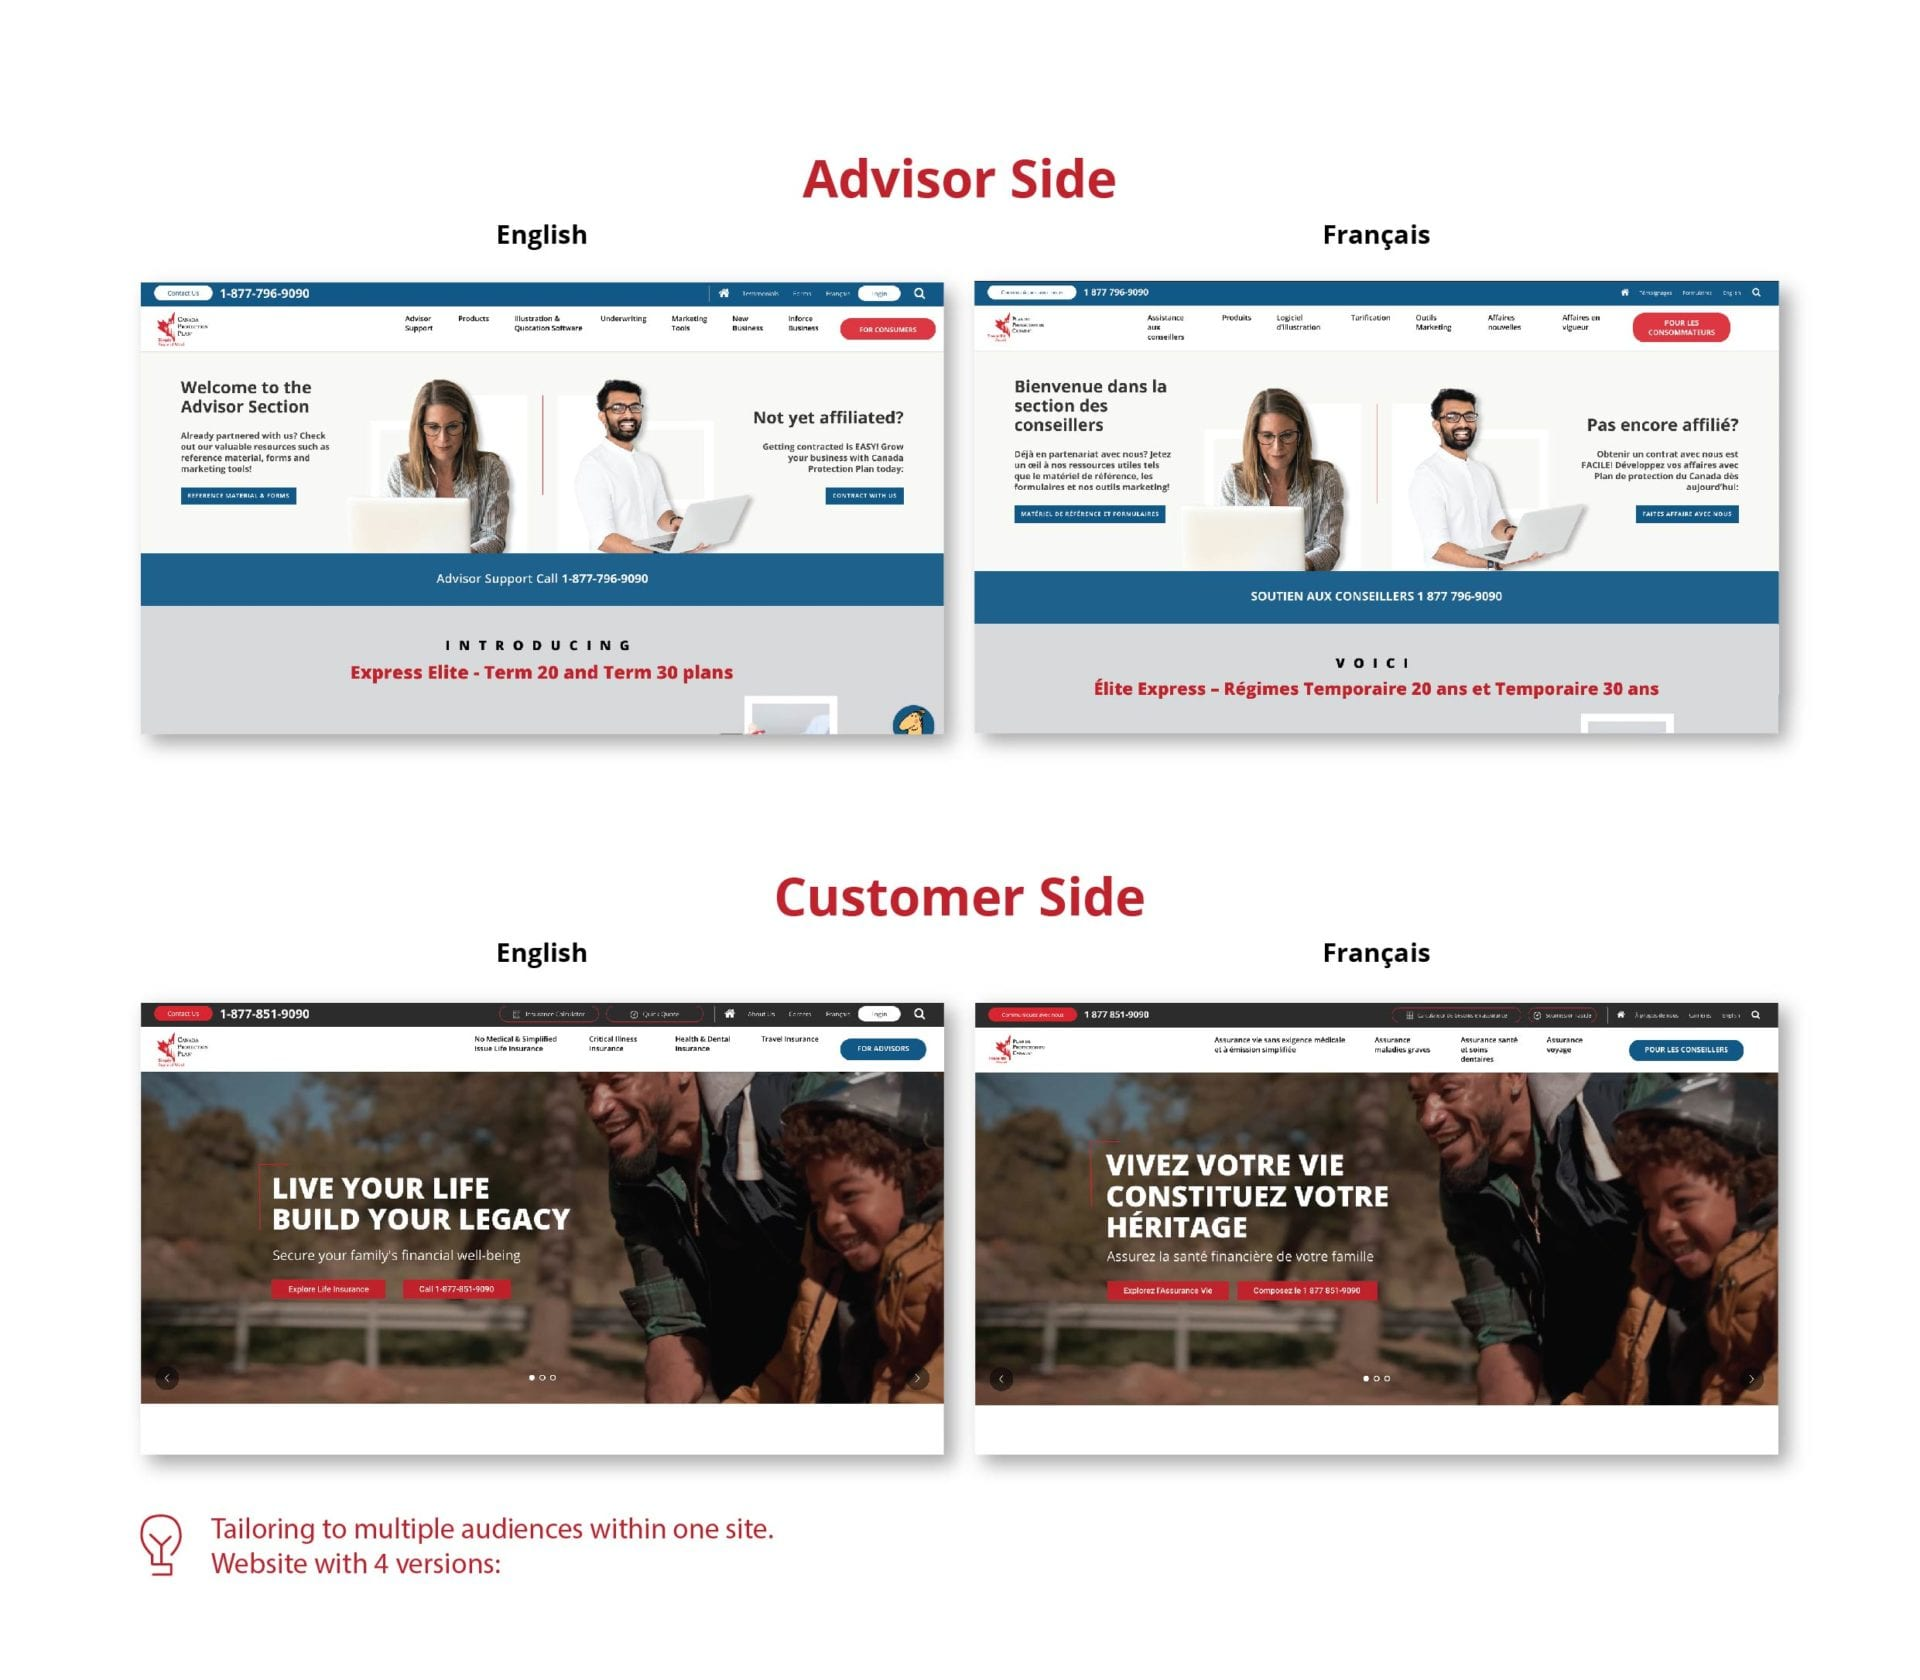 cpp case study advisors side english and french screenshot